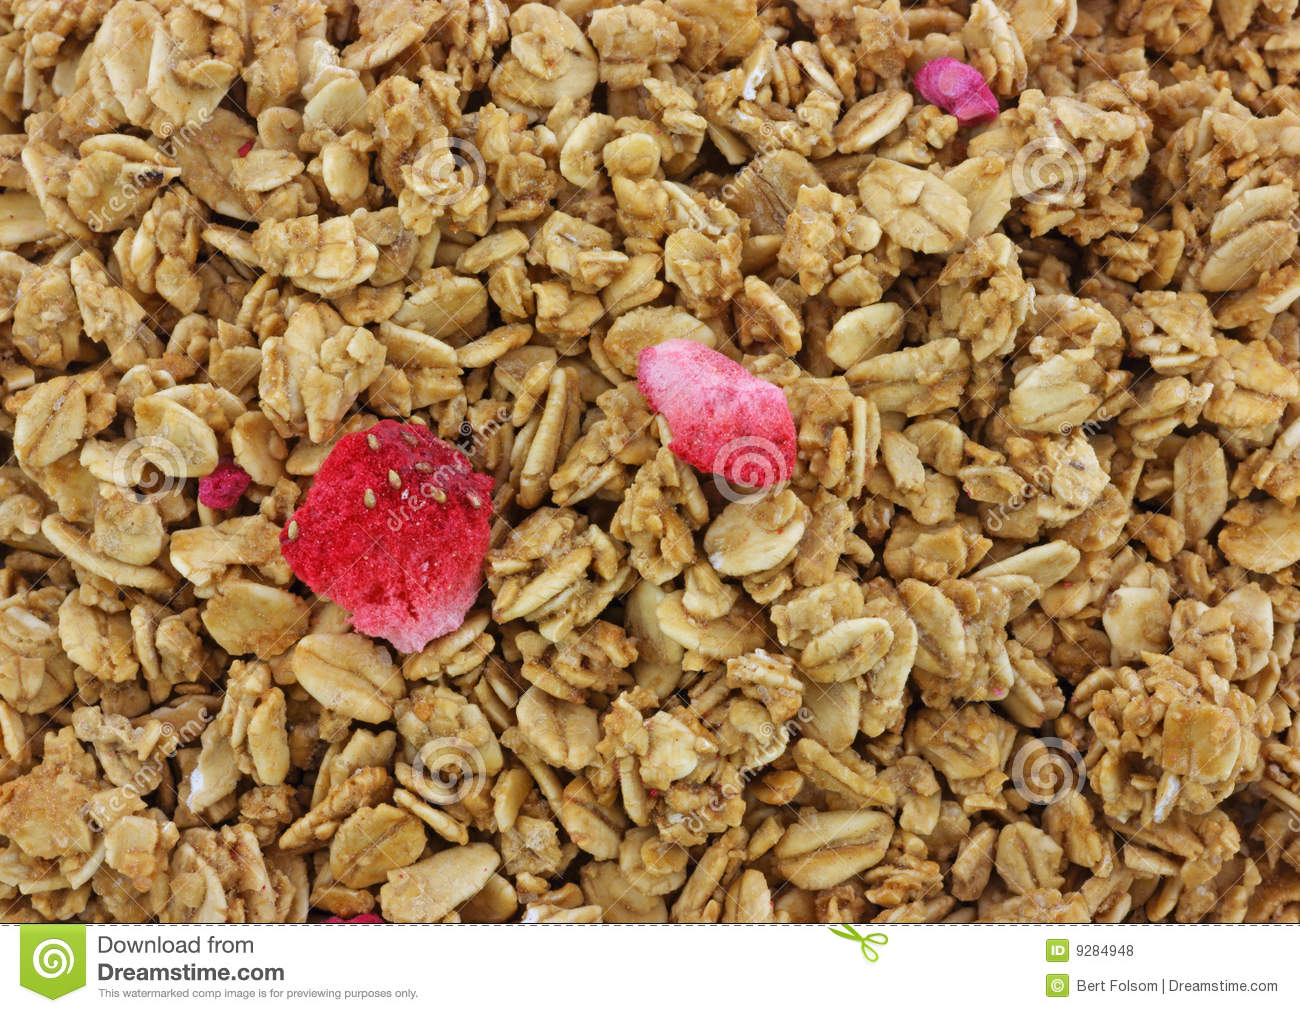 Strawberry Granola Cereal Royalty Free Stock Photos - Image: 9284948